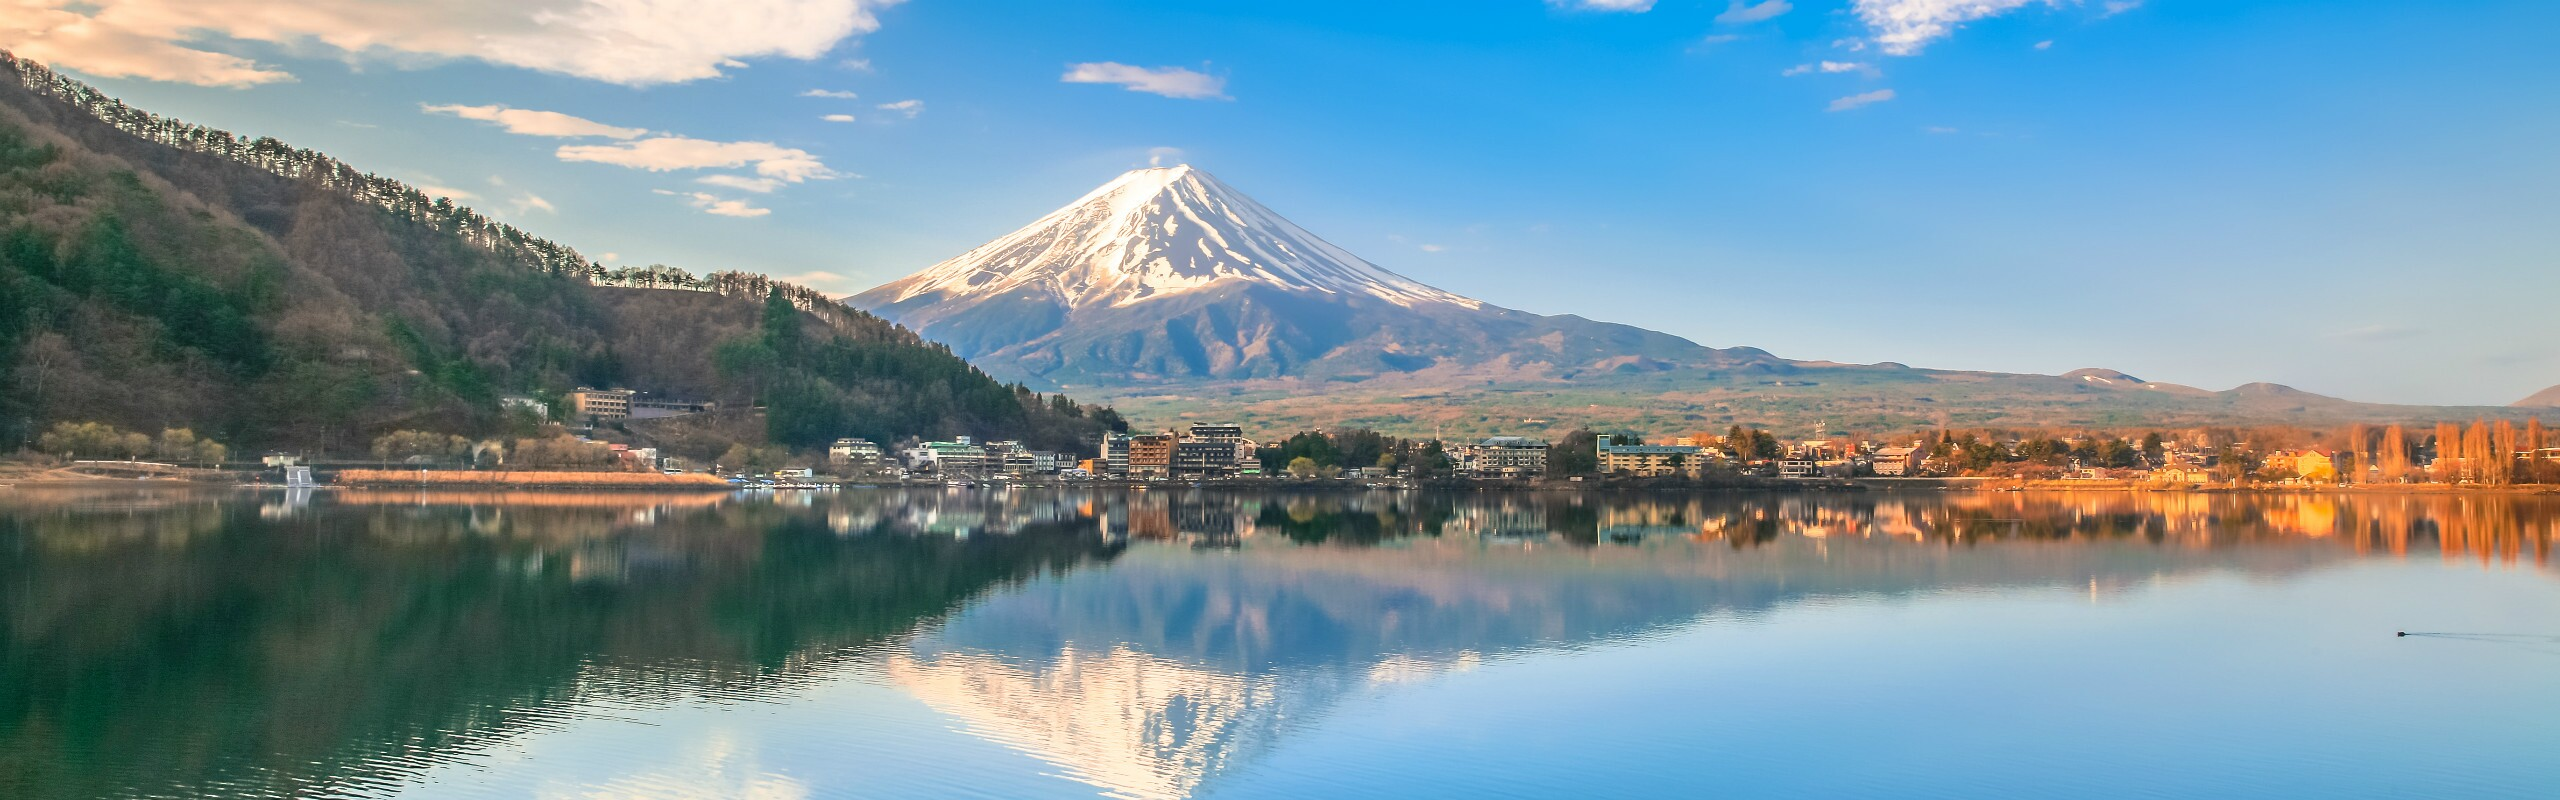 Top 10 Things to Do in Japan